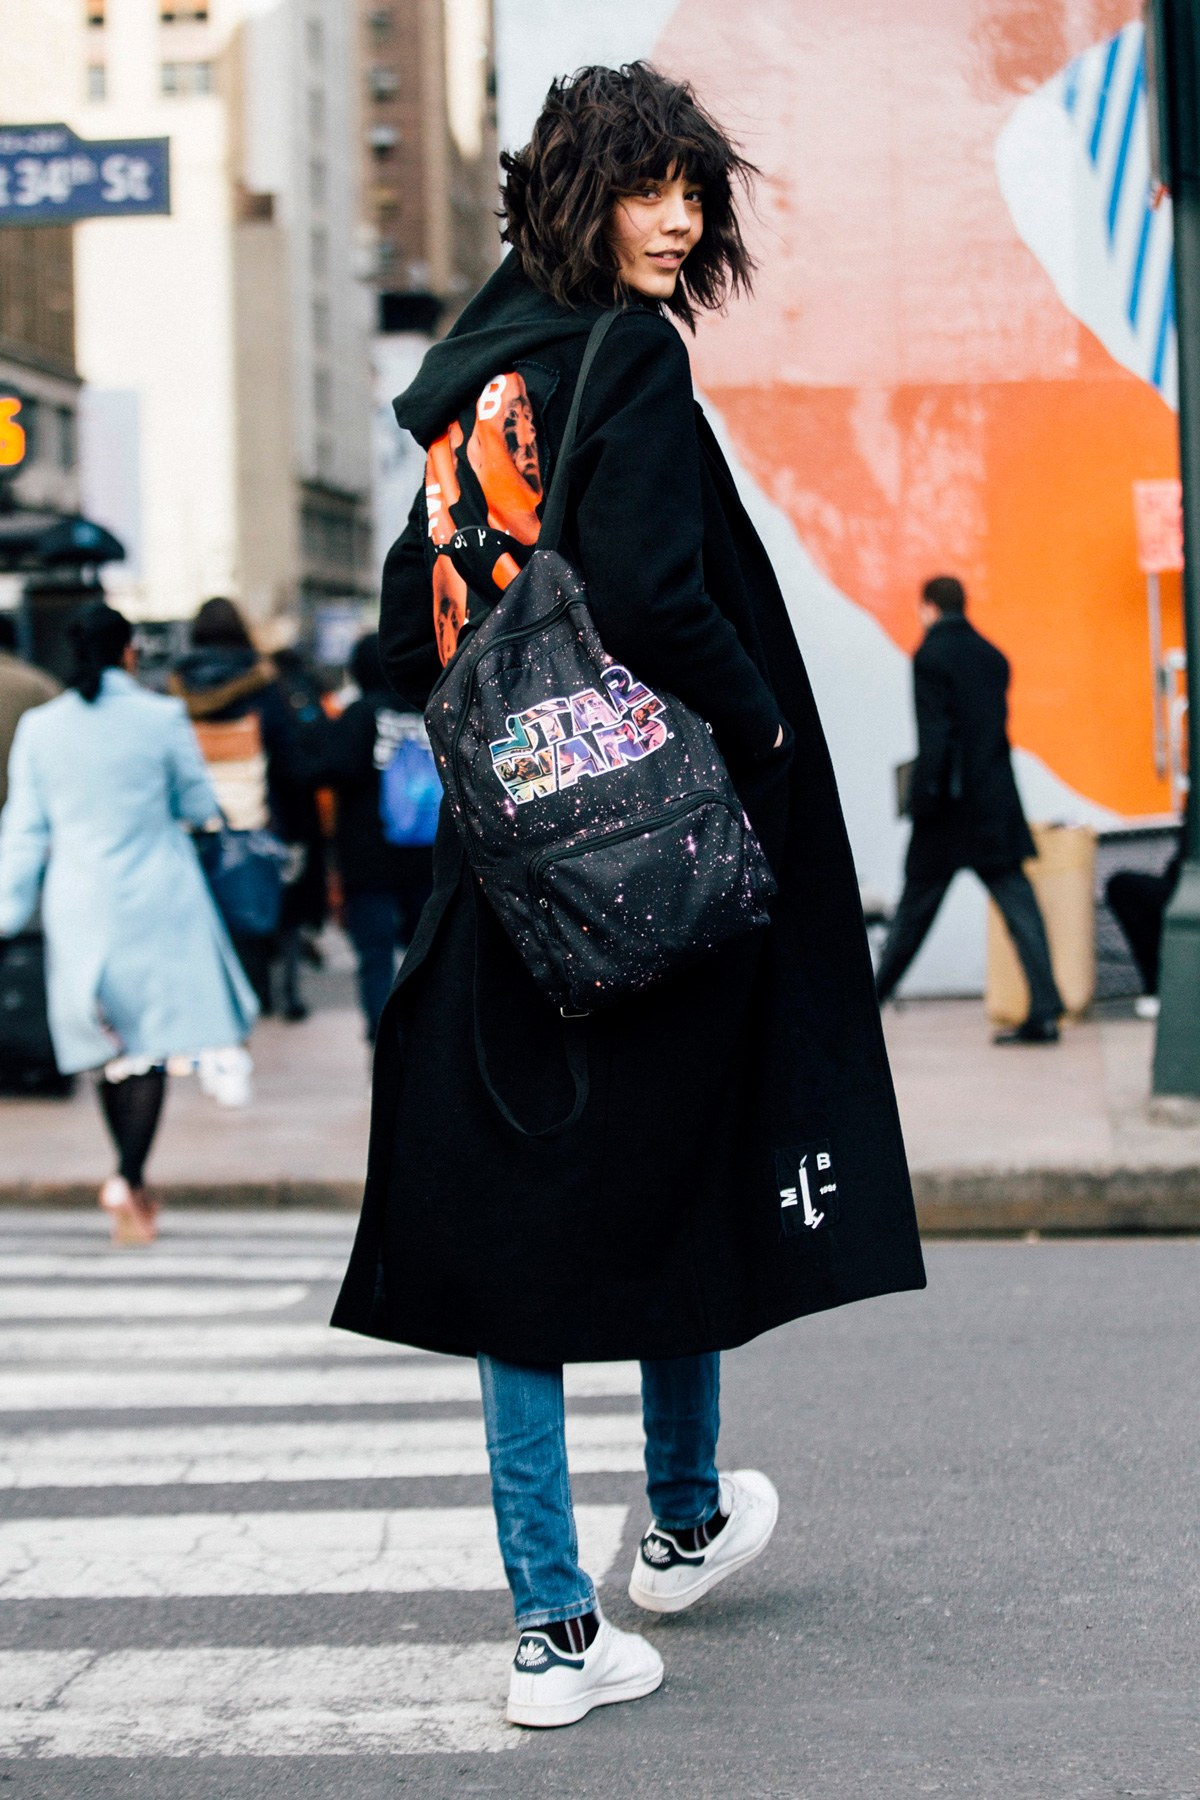 pA model carrying a emStar Warsem backpack during Fashion Week.p